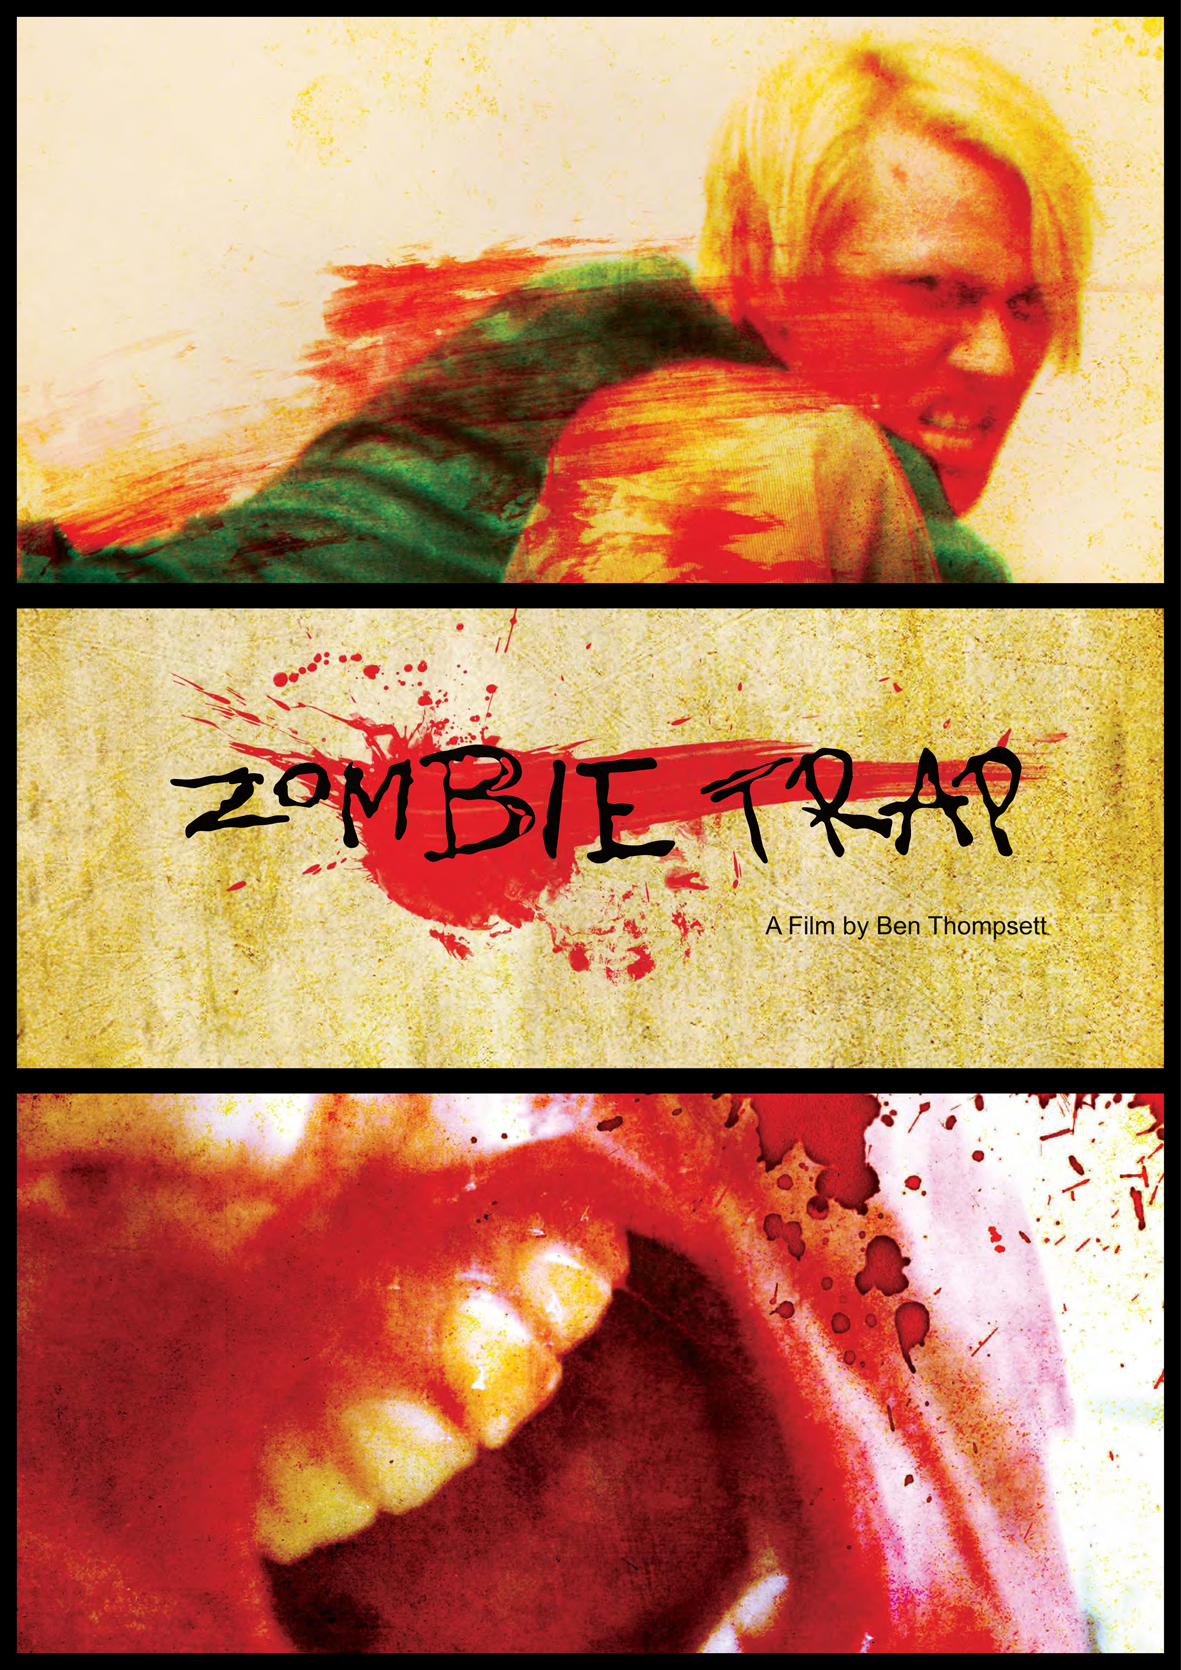 Poster design for short film Zombie Trap by Ben Thompsett. Photography and design by Ulysses Black 2010.